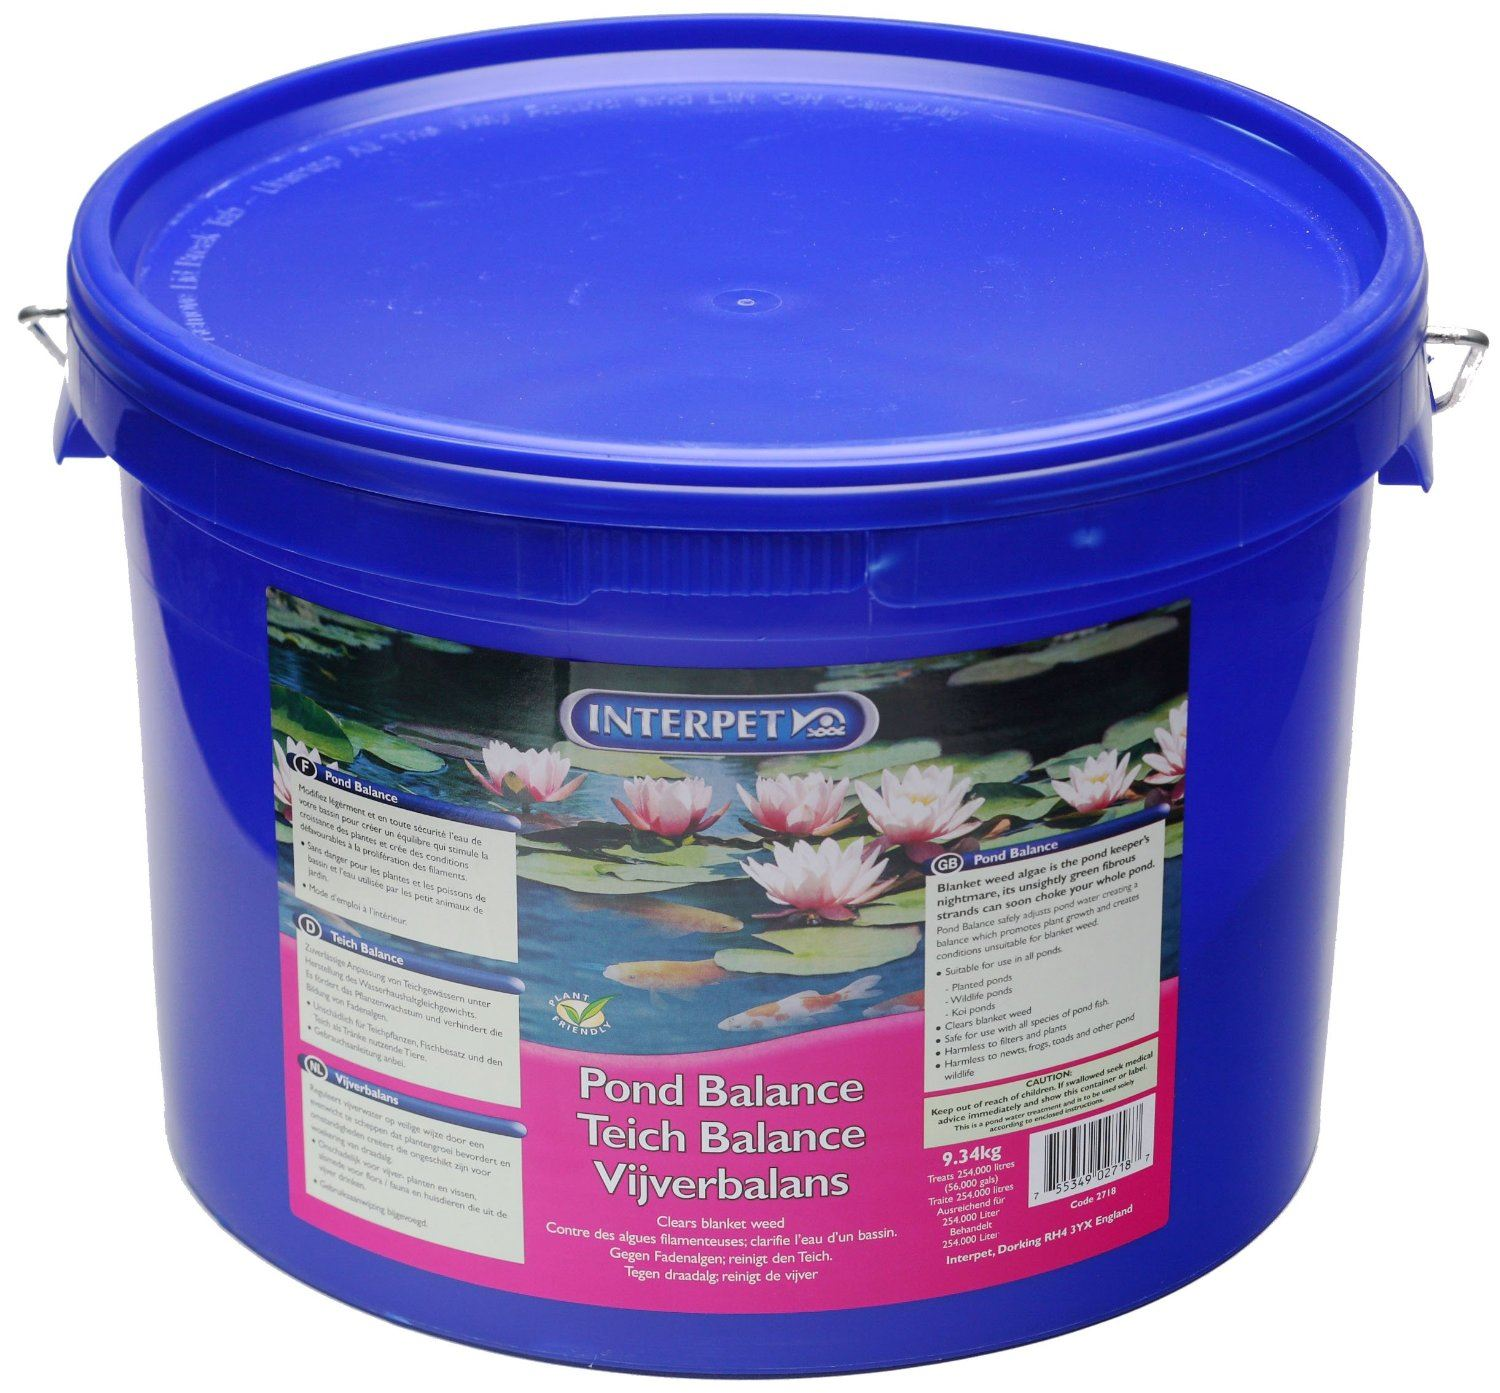 Interpet blagdon pond balance blanketweed koi fish pond for Koi treatment